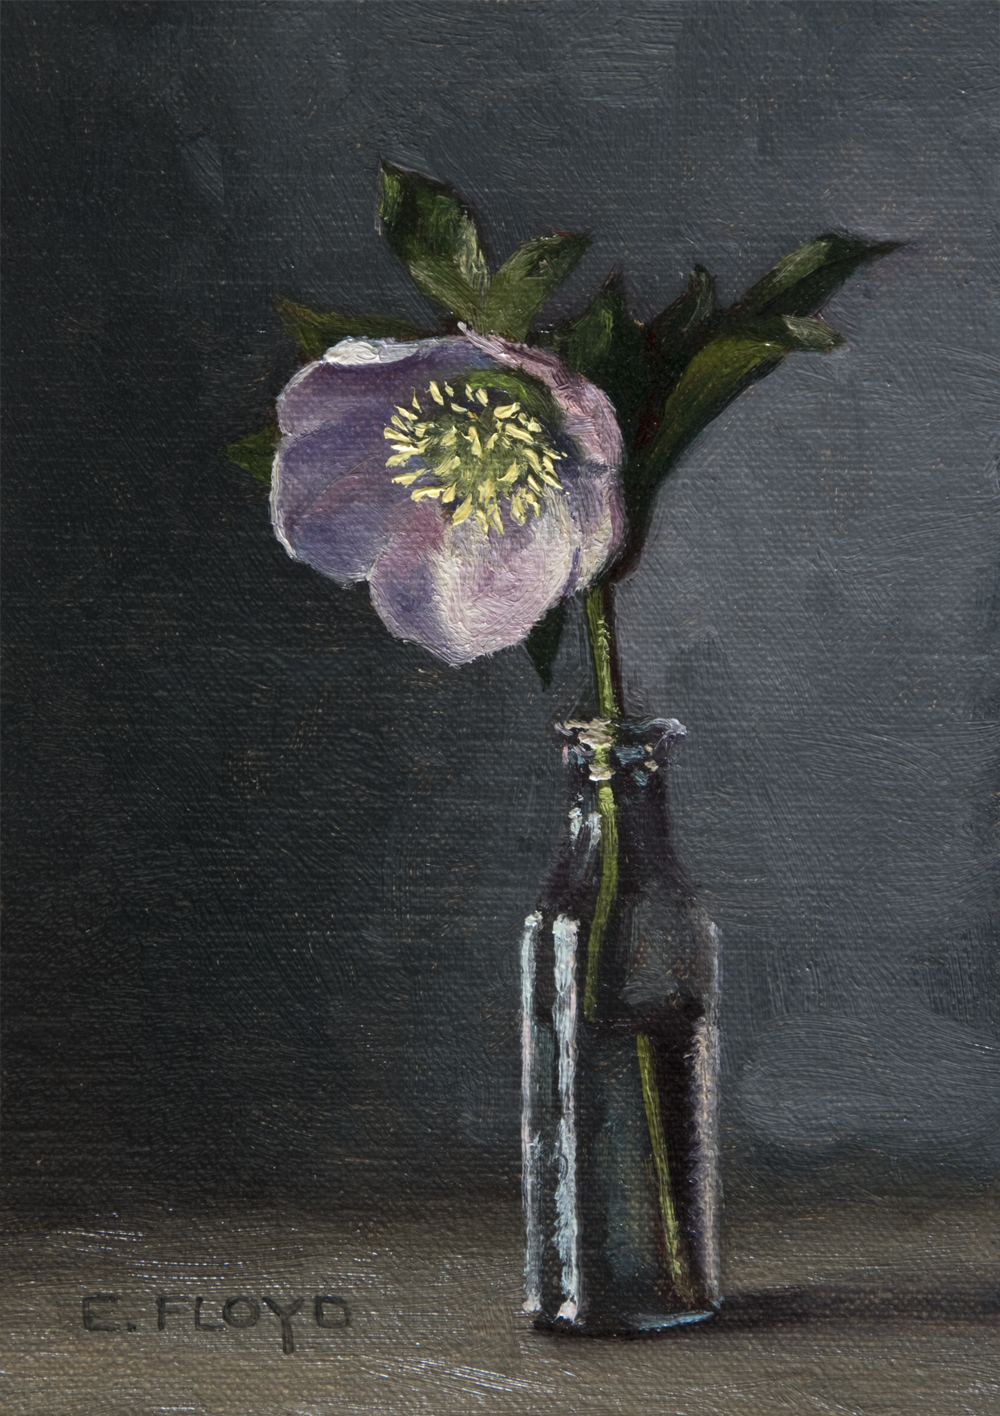 Hellebore by Elizabeth Floyd, 7 x 5 inches, oil on linen panel